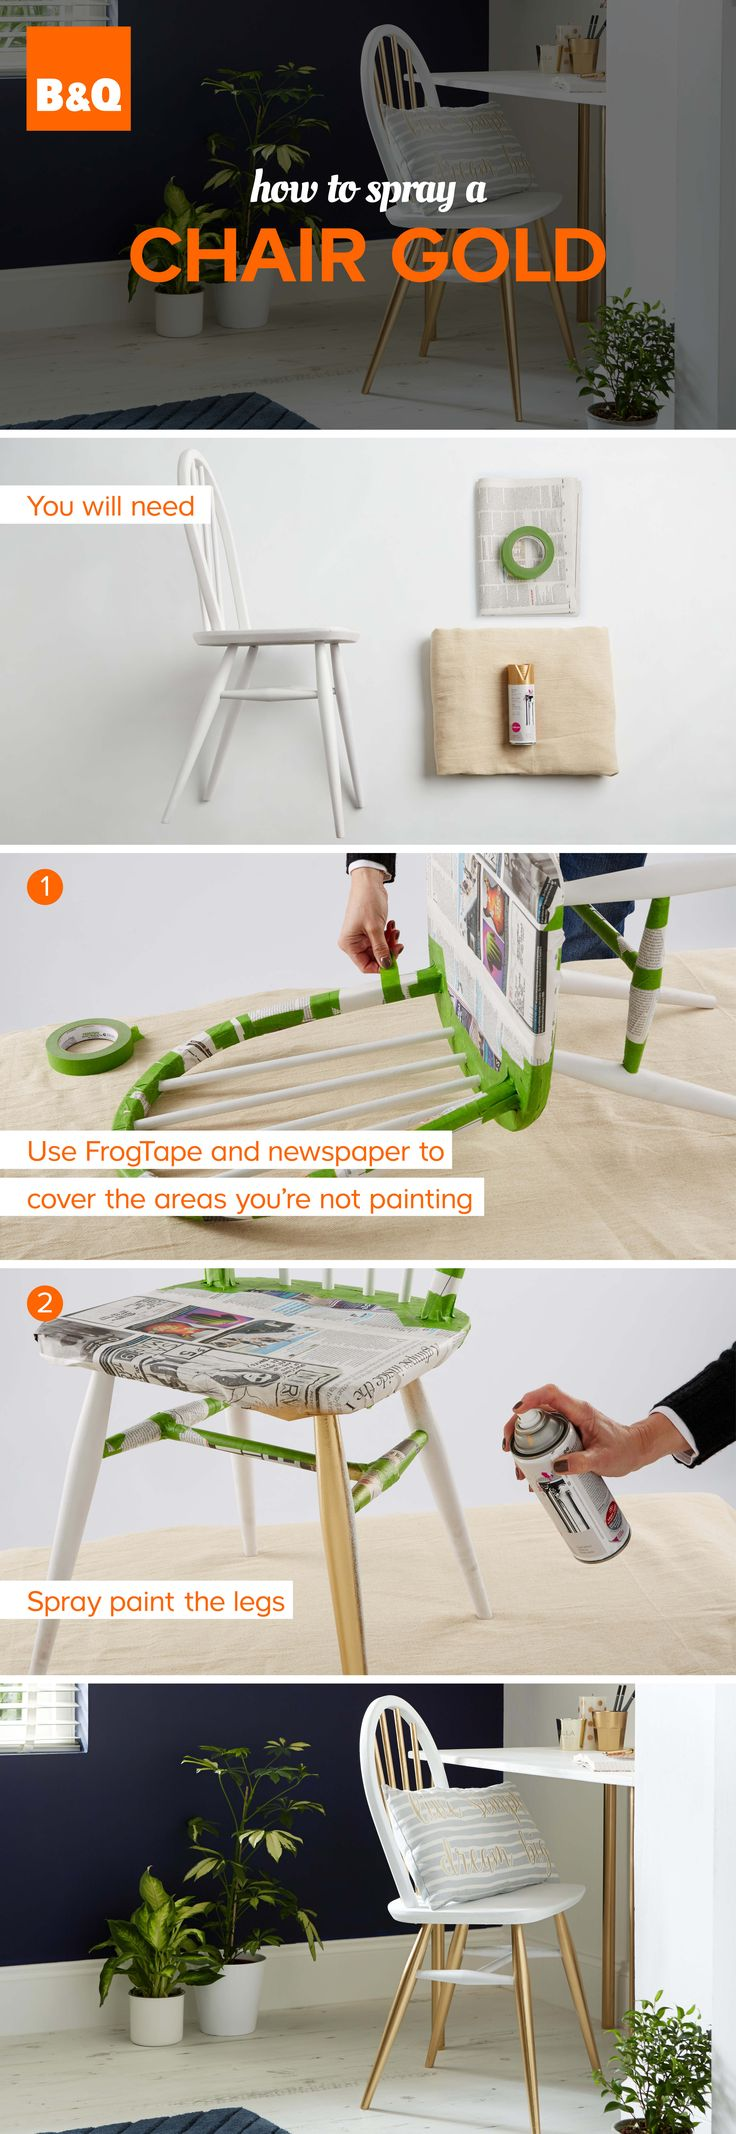 25+ unique Spray paint chairs ideas on Pinterest | Painting kitchen chairs,  DIY furniture fix and Spray painted furniture